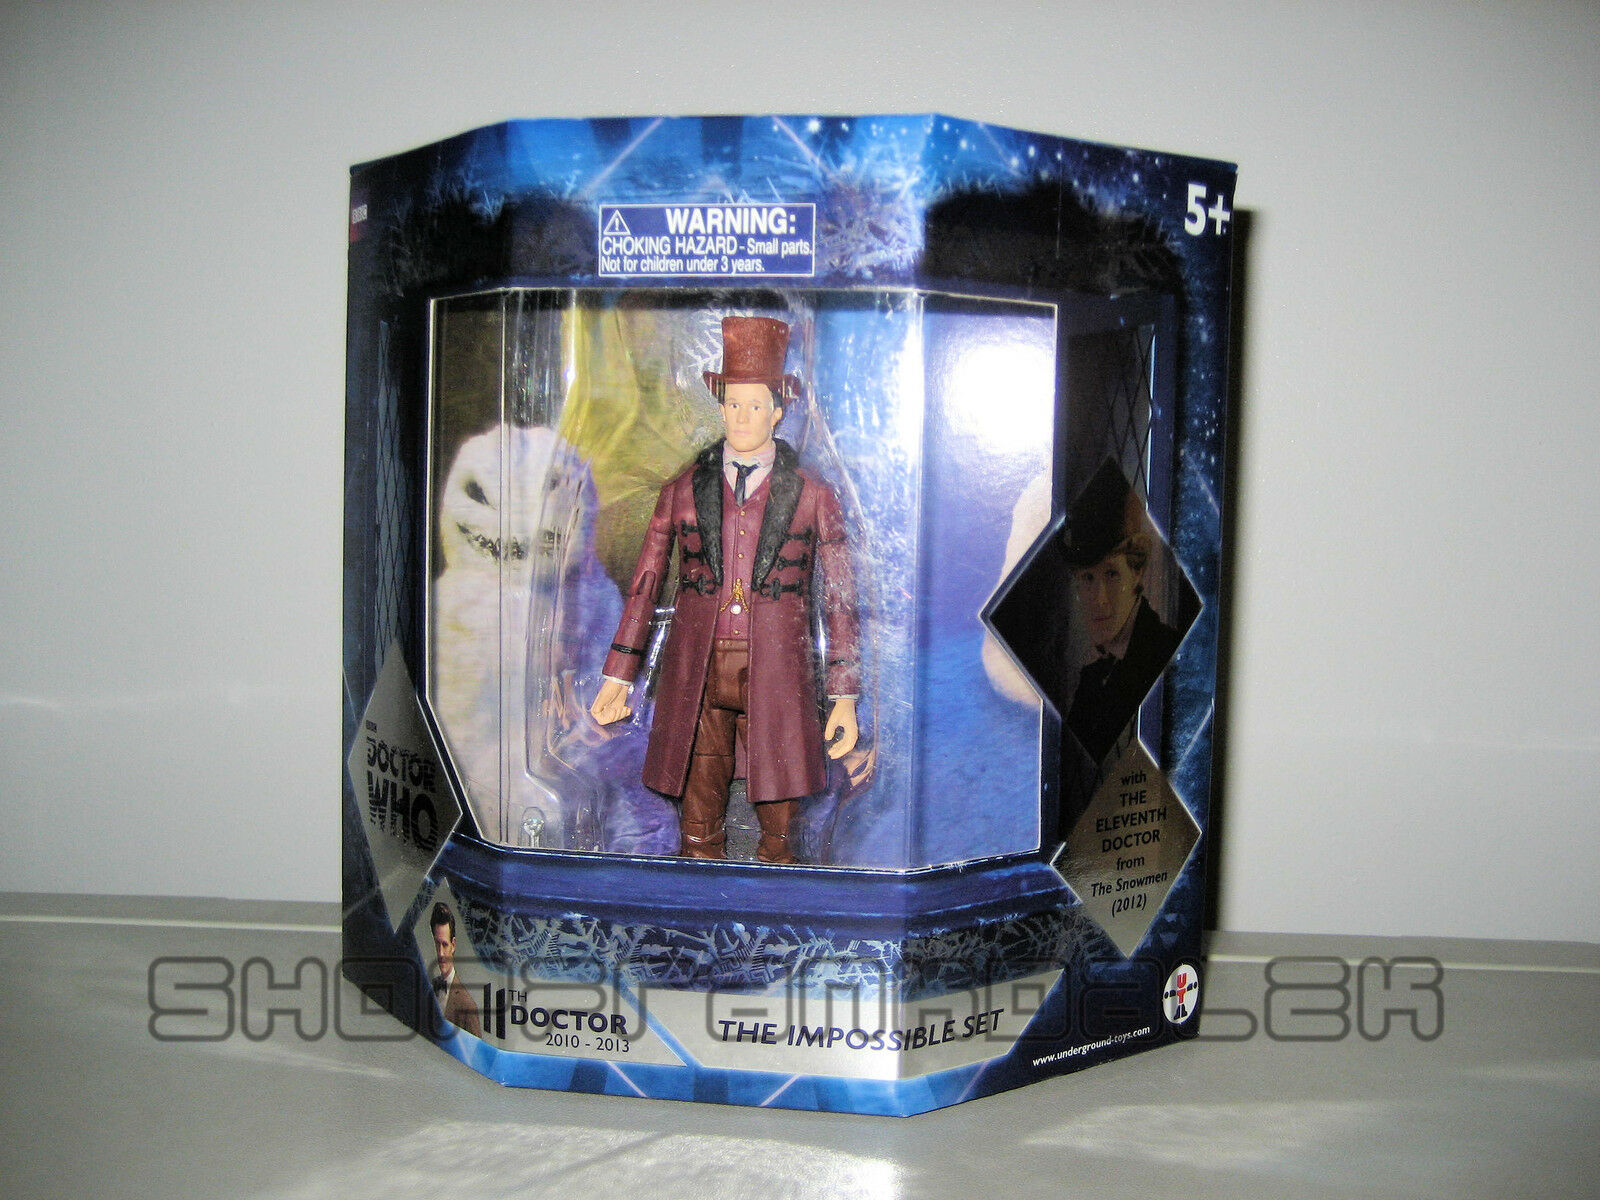 Doctor Who - The Impossible Set (11th Doctor, Clara Oswin Oswald)